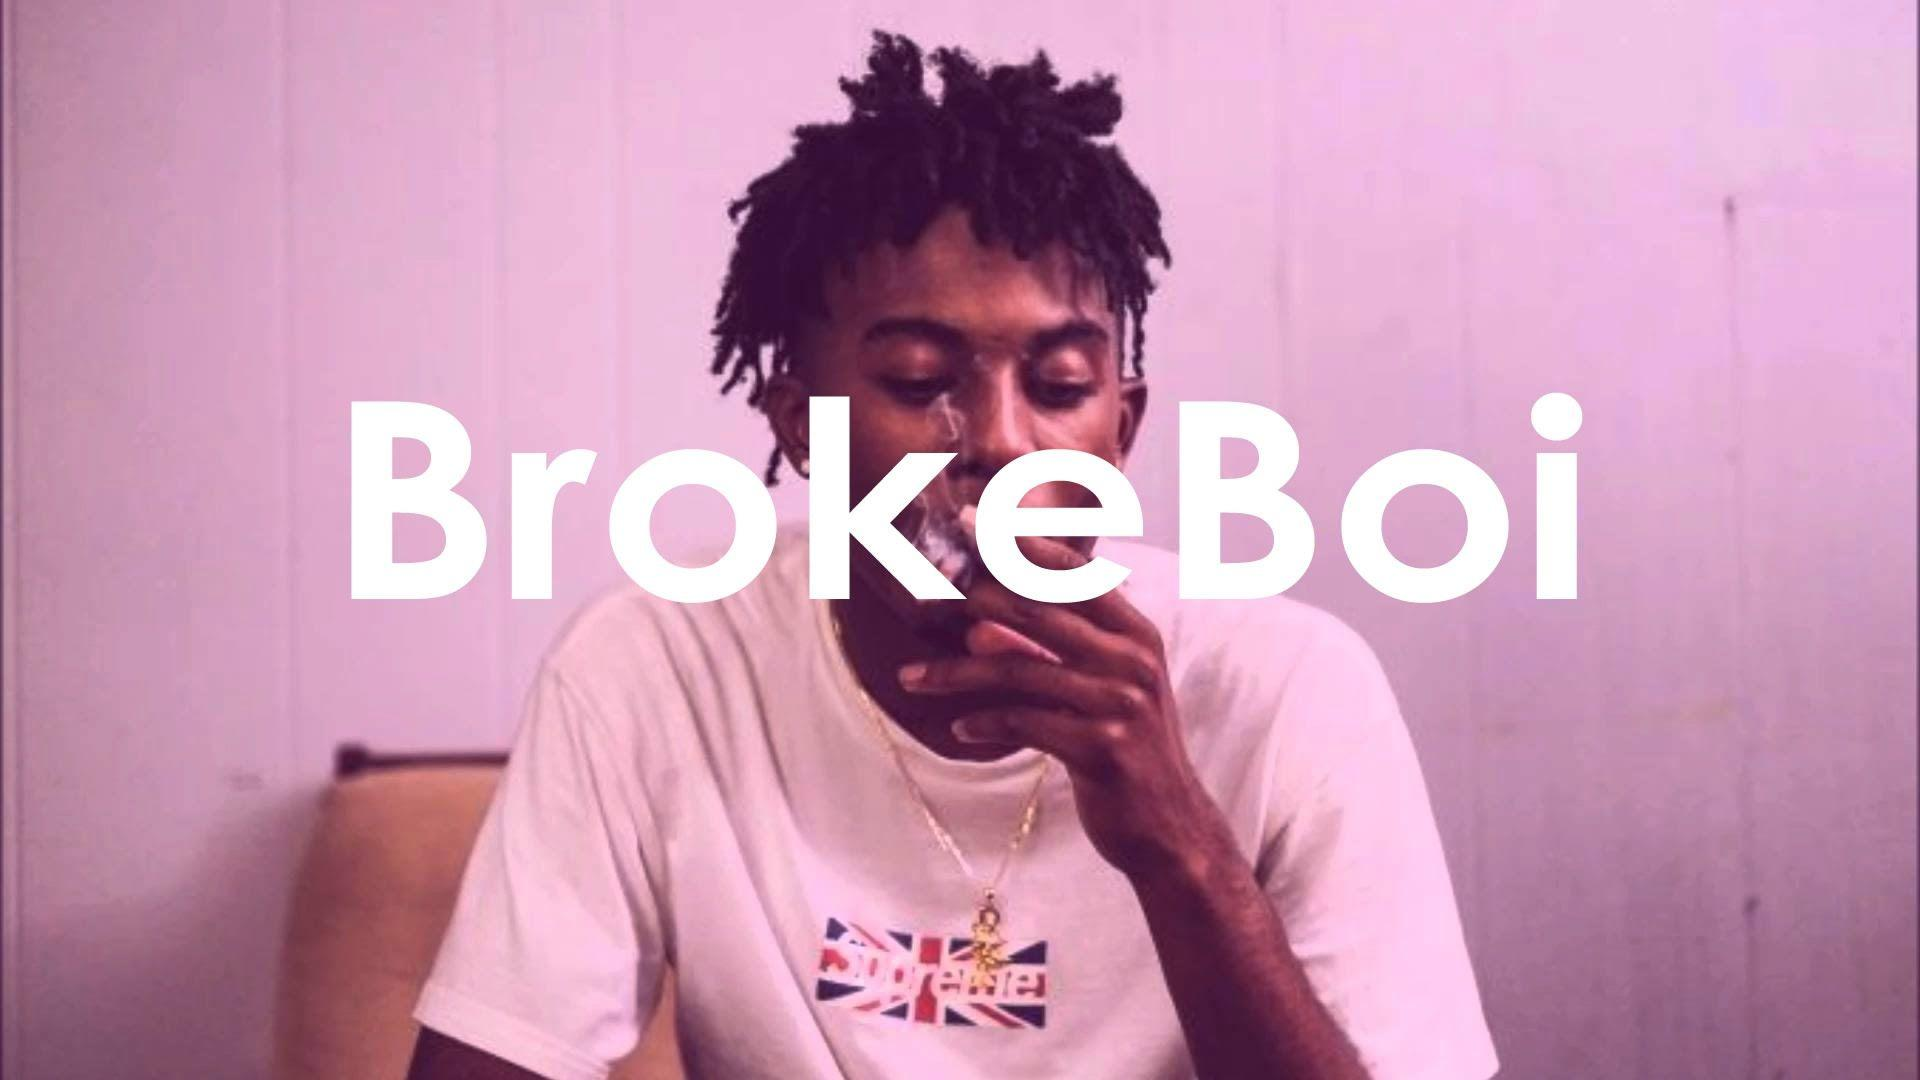 playboi carti wallpapers wallpaper cave